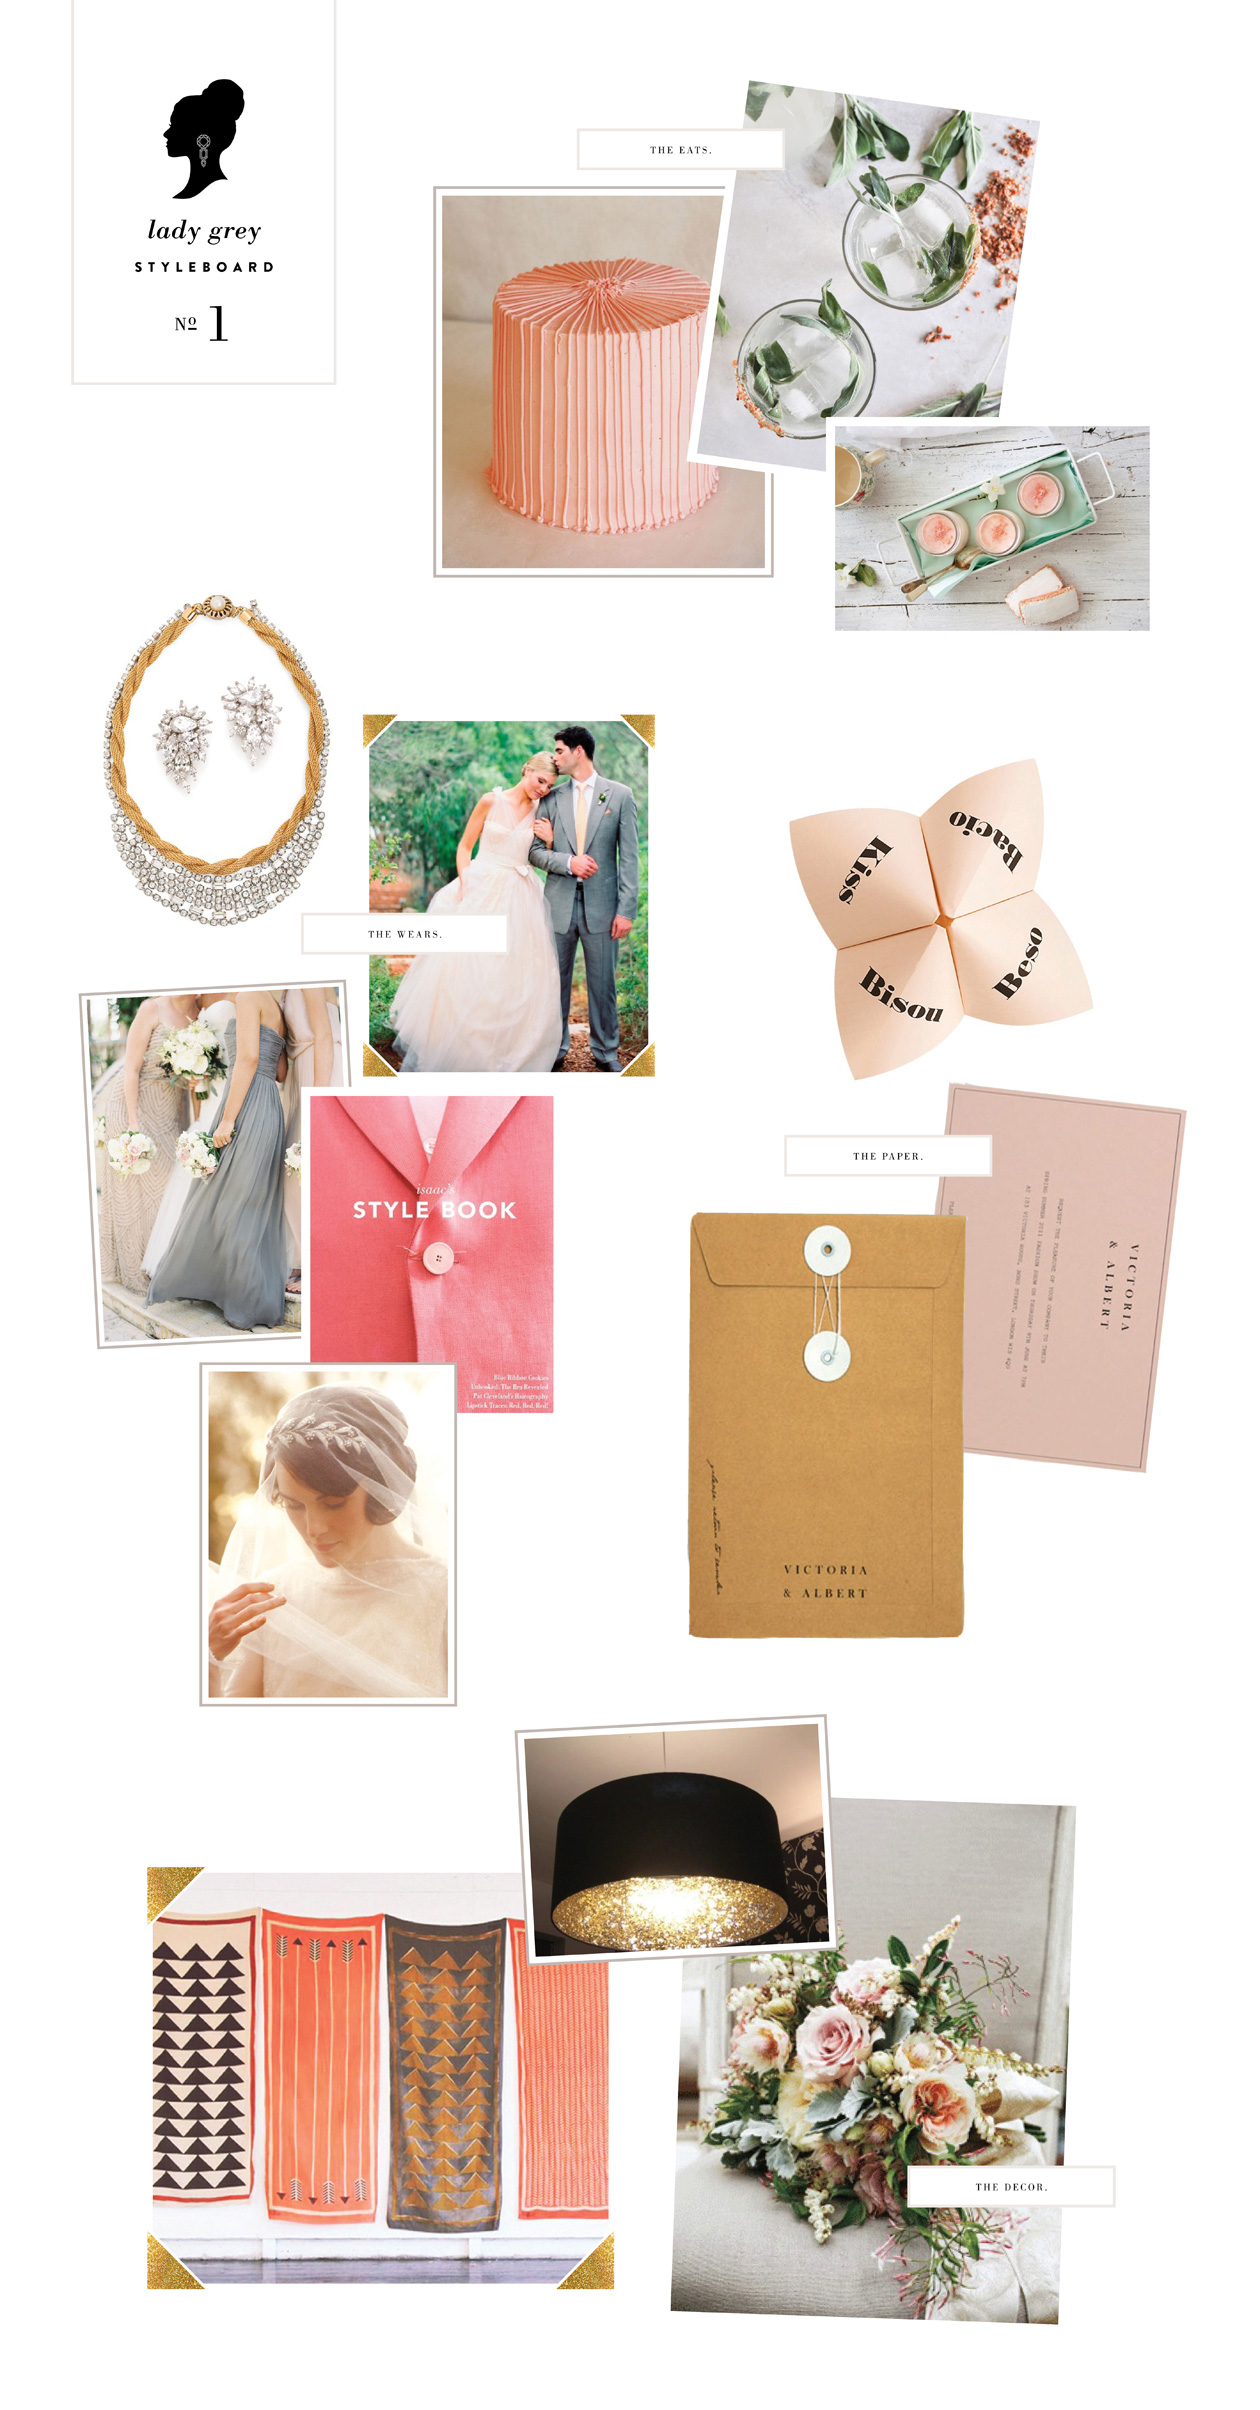 grey_STYLING_BOARD_LADY_MARY_DOWNTON_ABBEY_WEDDING